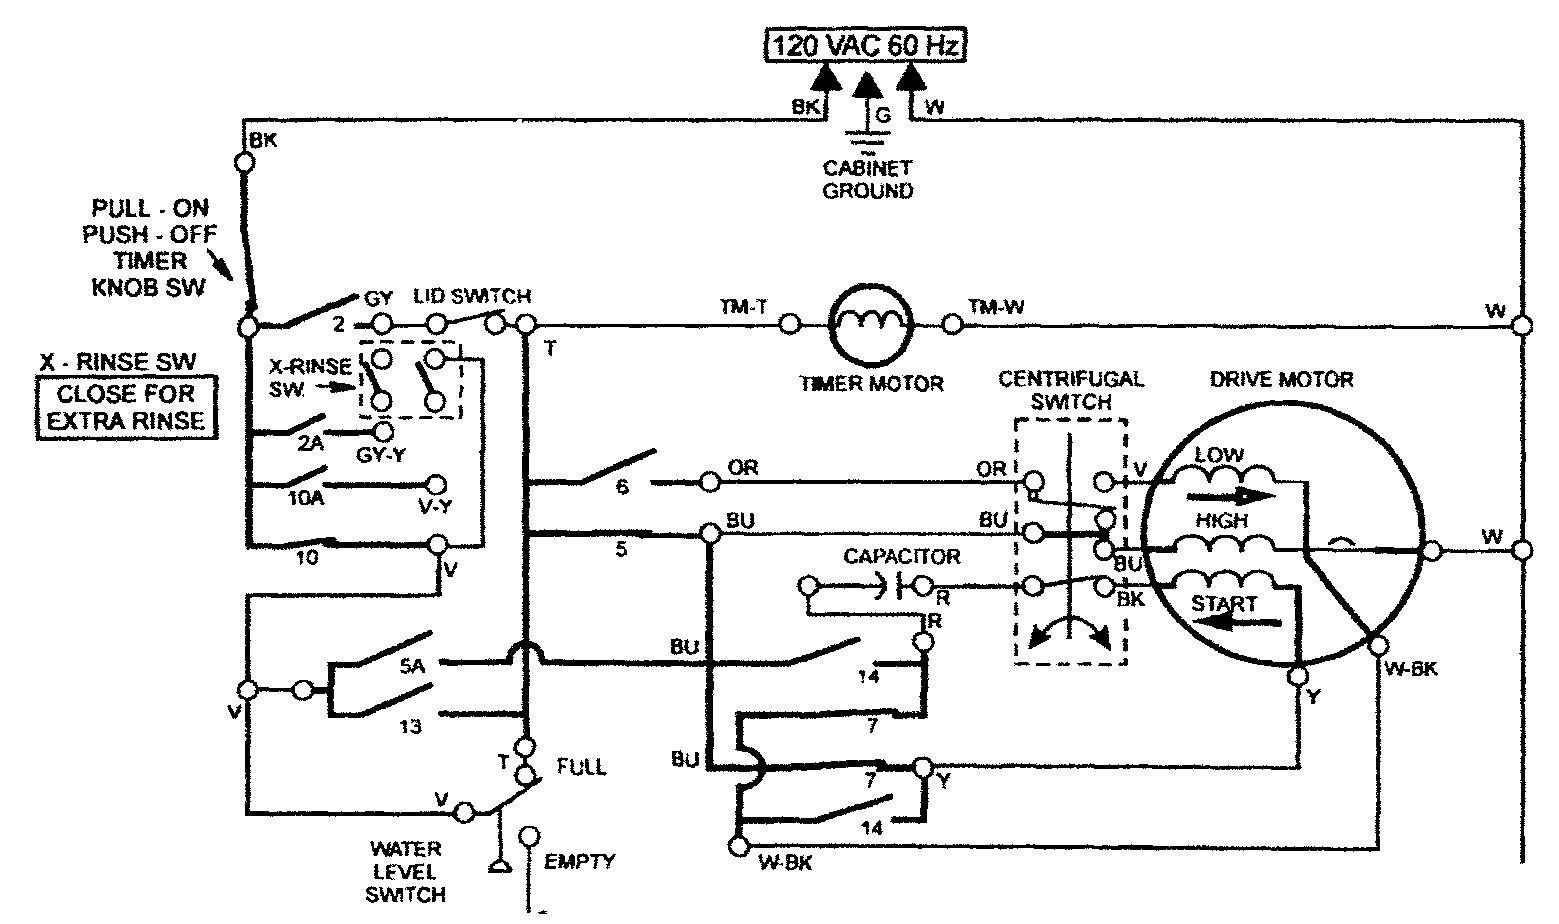 Wiring Diagram Of Ifb Washing Machine